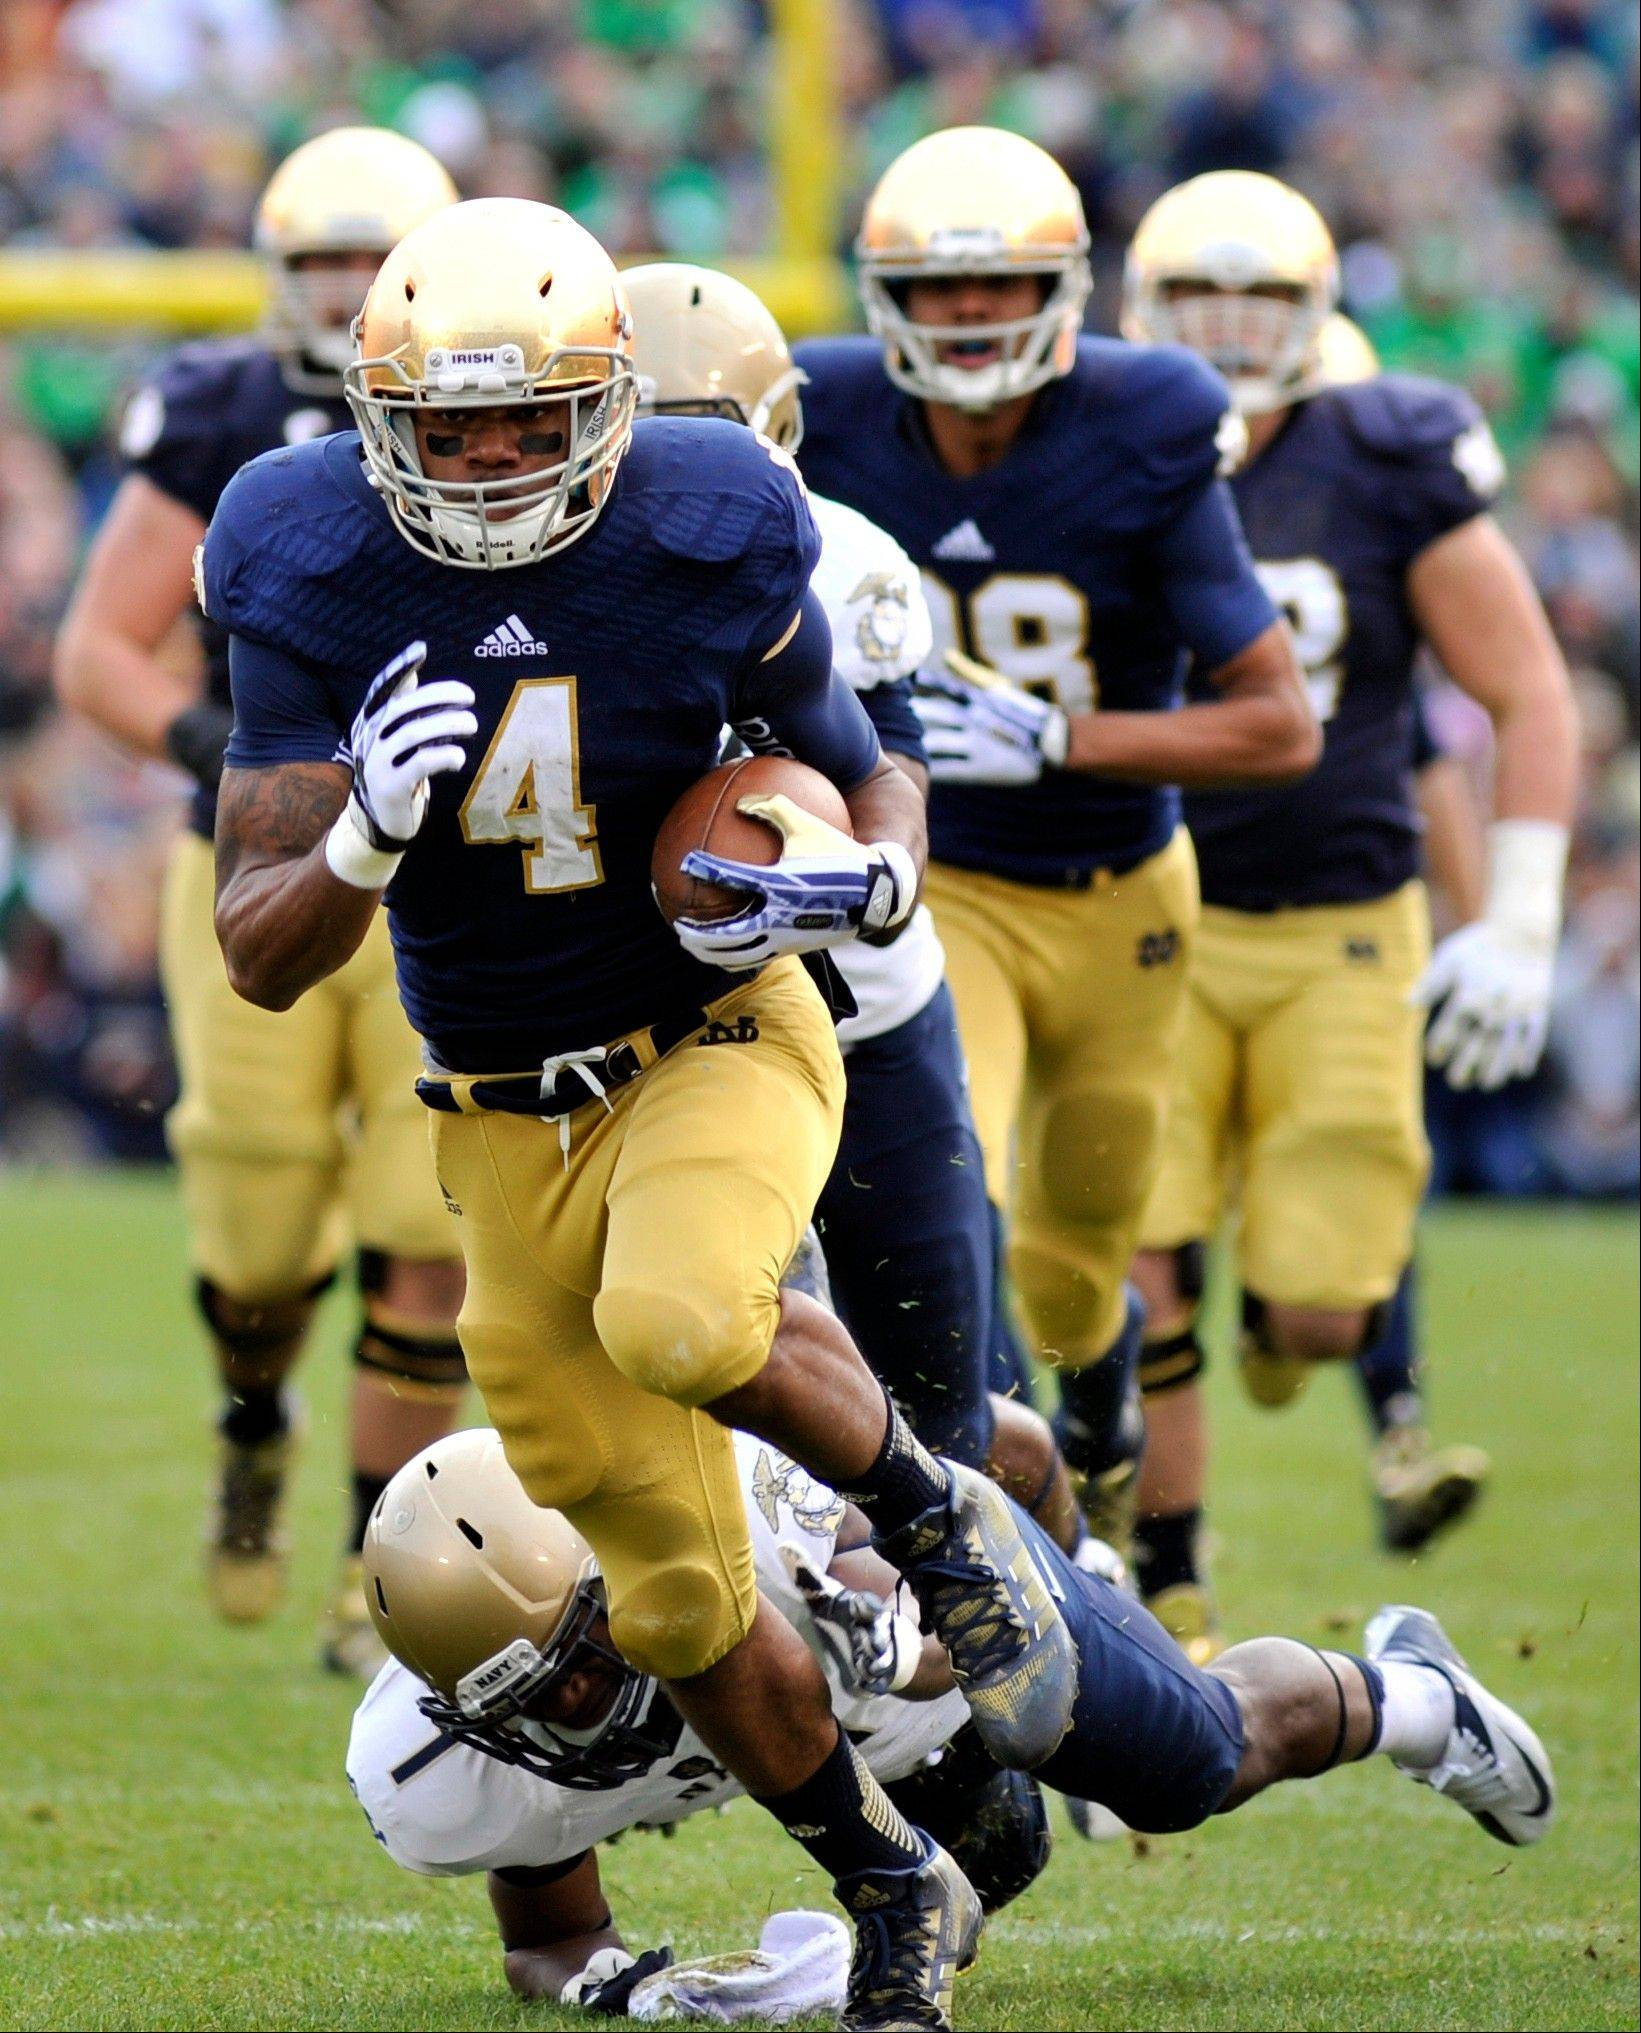 Notre Dame running back George Atkinson III heads to the end zone against Navy.